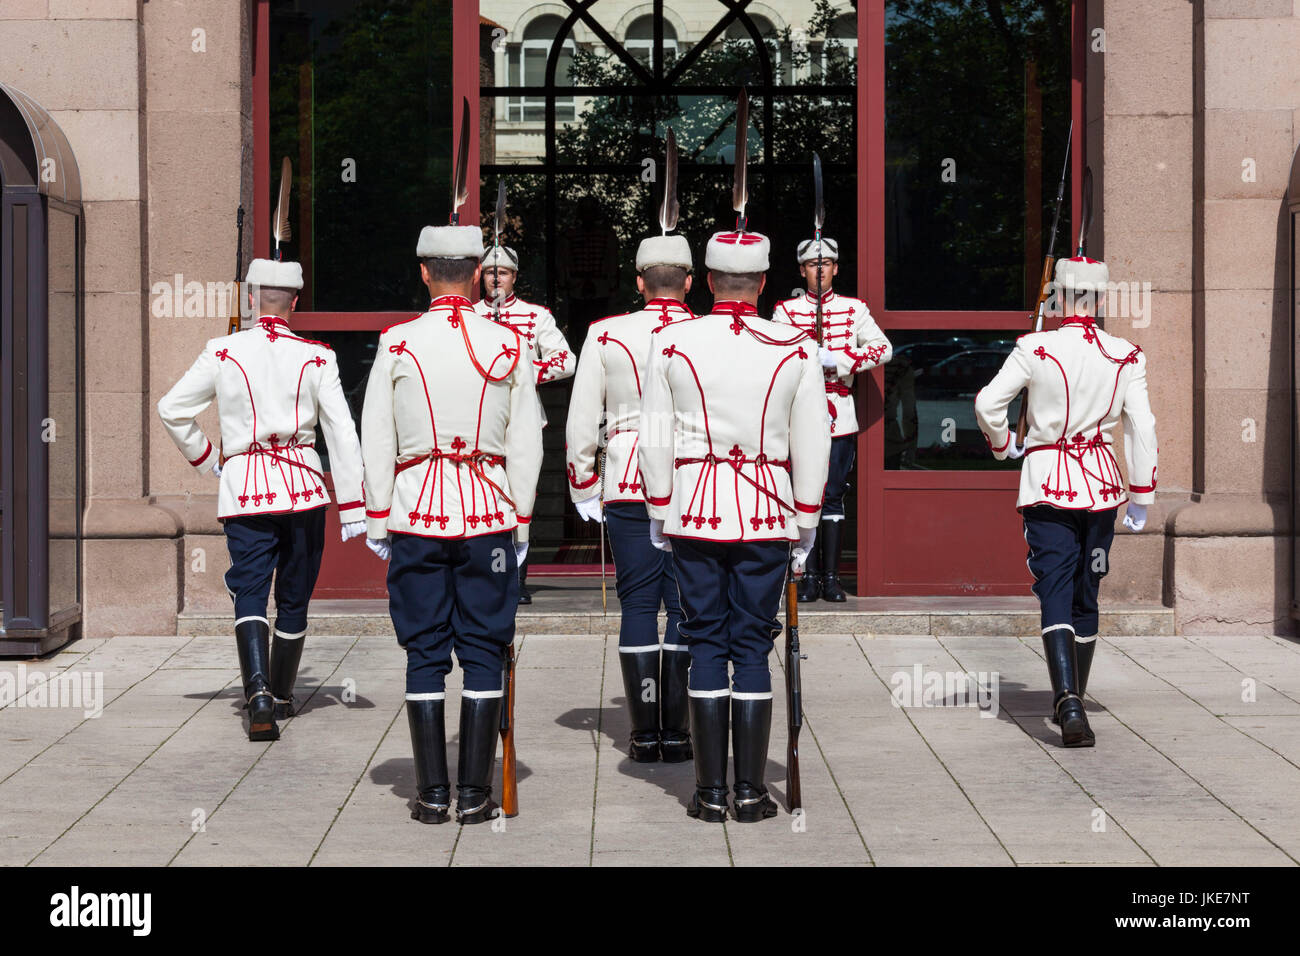 Bulgaria, Sofia, Bulgarian President's Building, changing of the guard ceremony - Stock Image